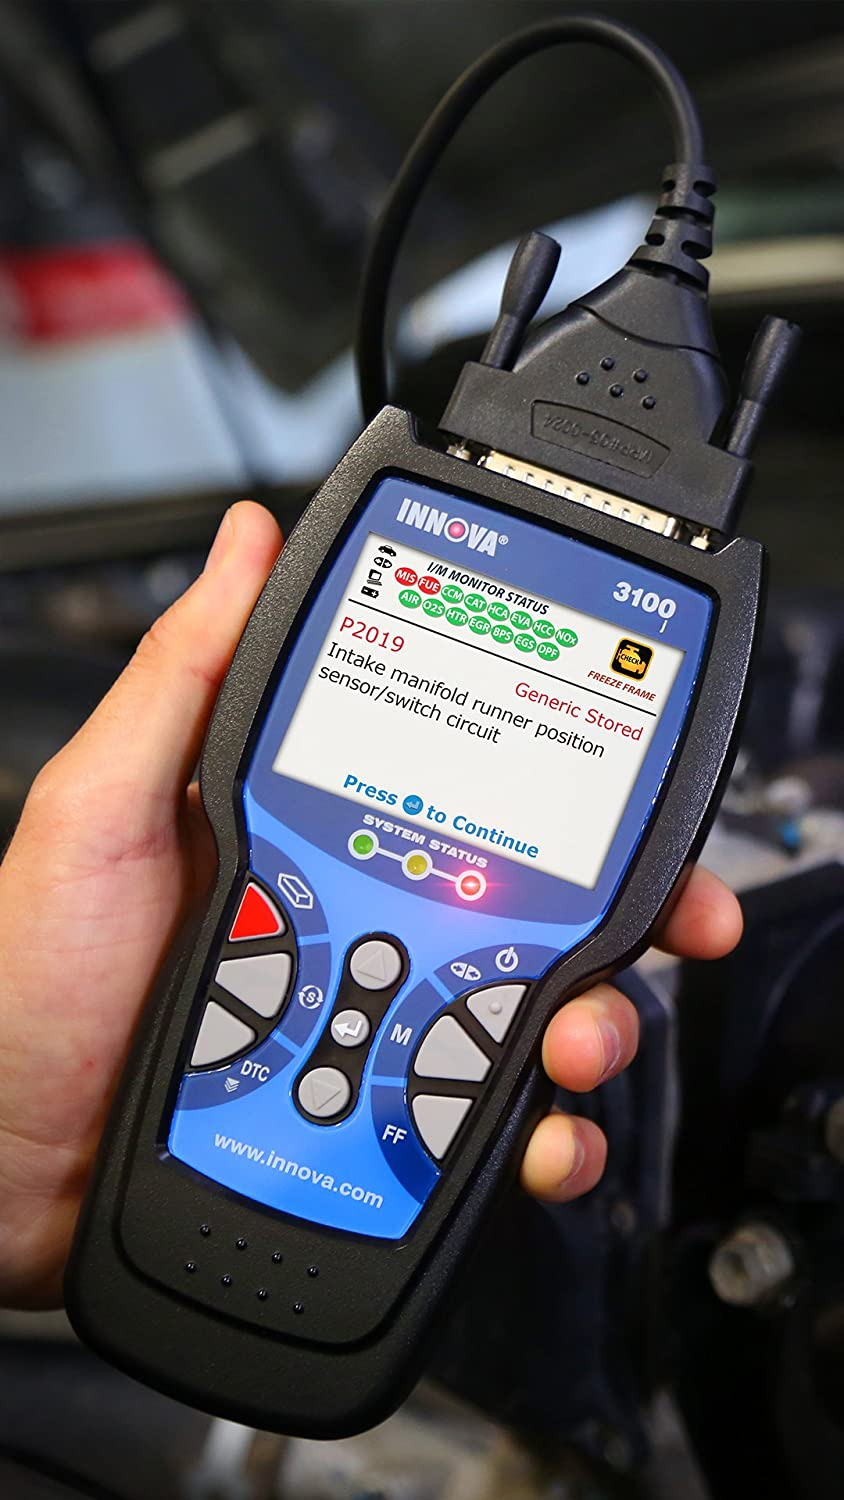 Innova 3100j Diagnostic Code Reader